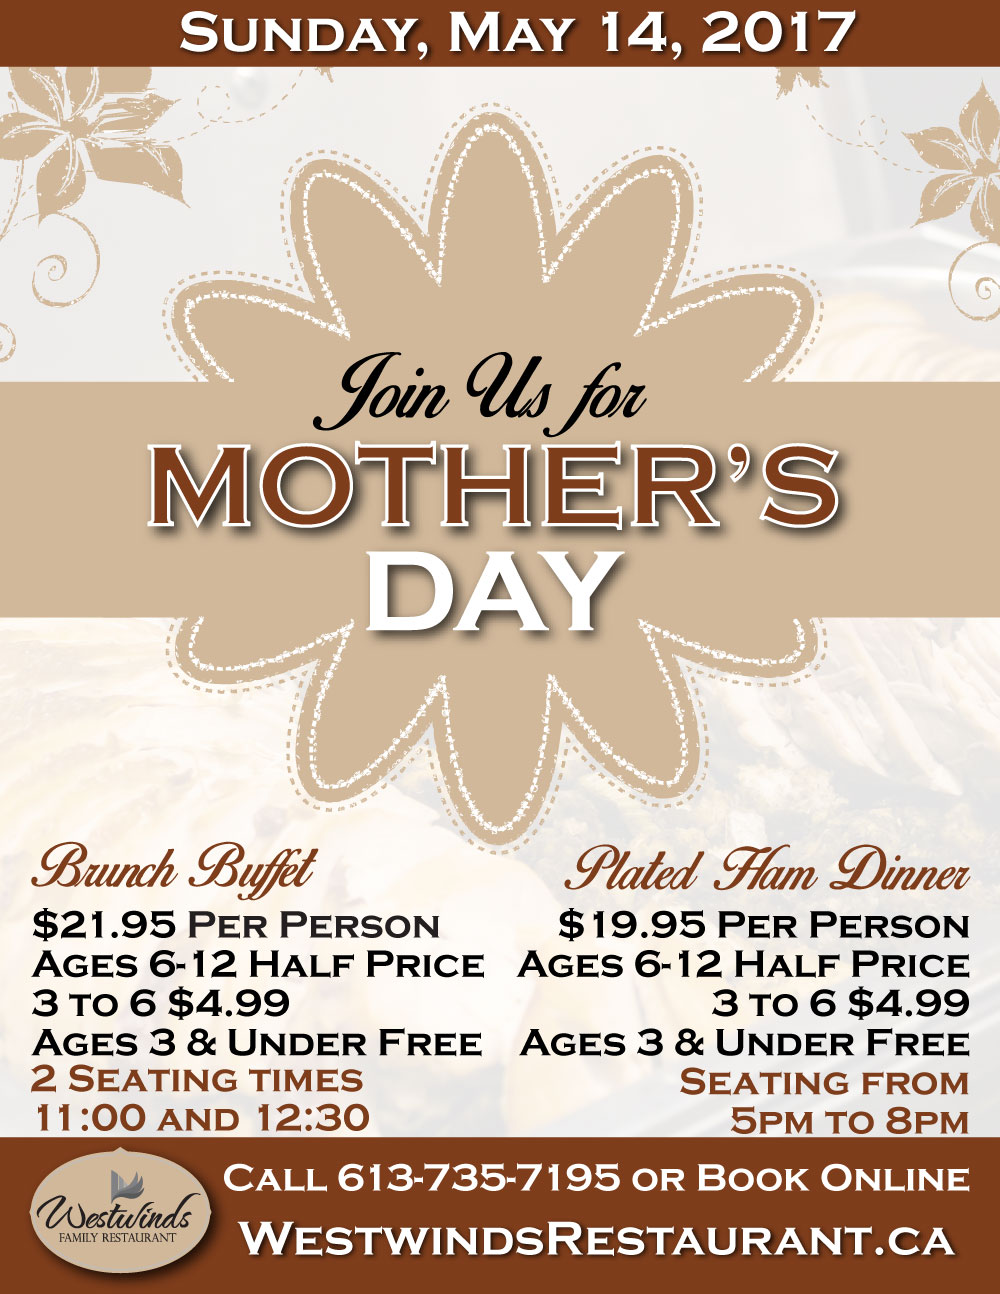 Treat Mom to Brunch or Dinner on Mother's Day